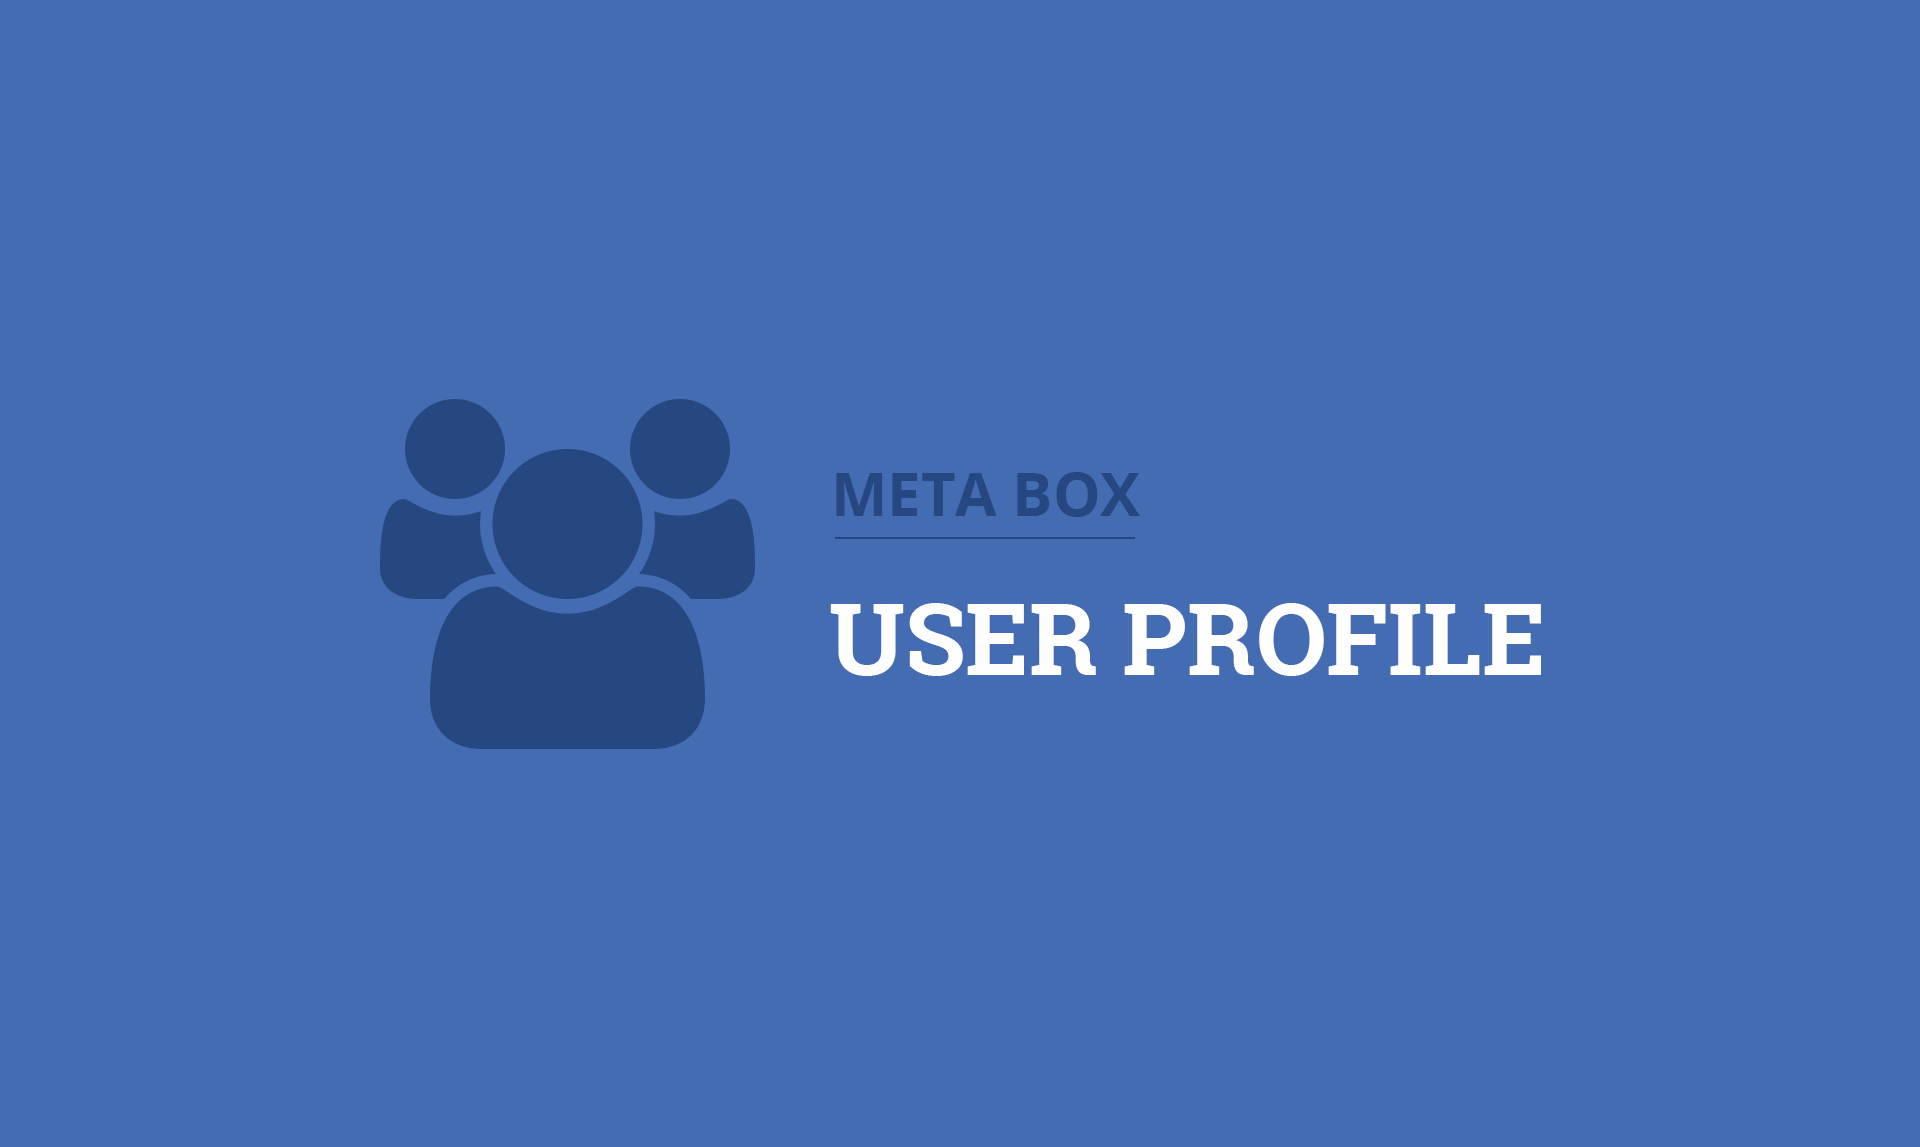 MB User Profile